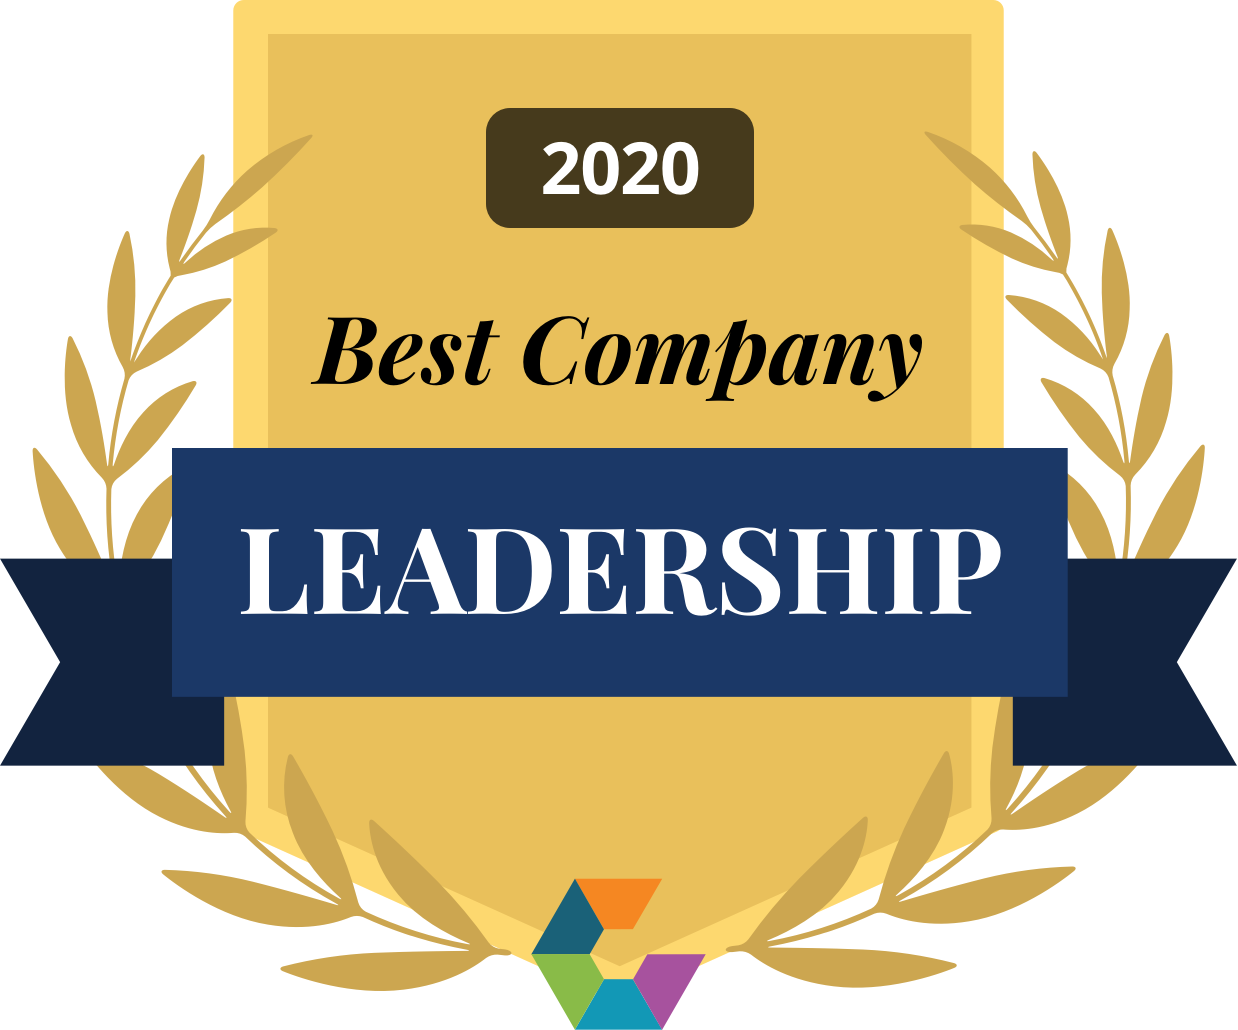 Comparably- Best Company Leadership